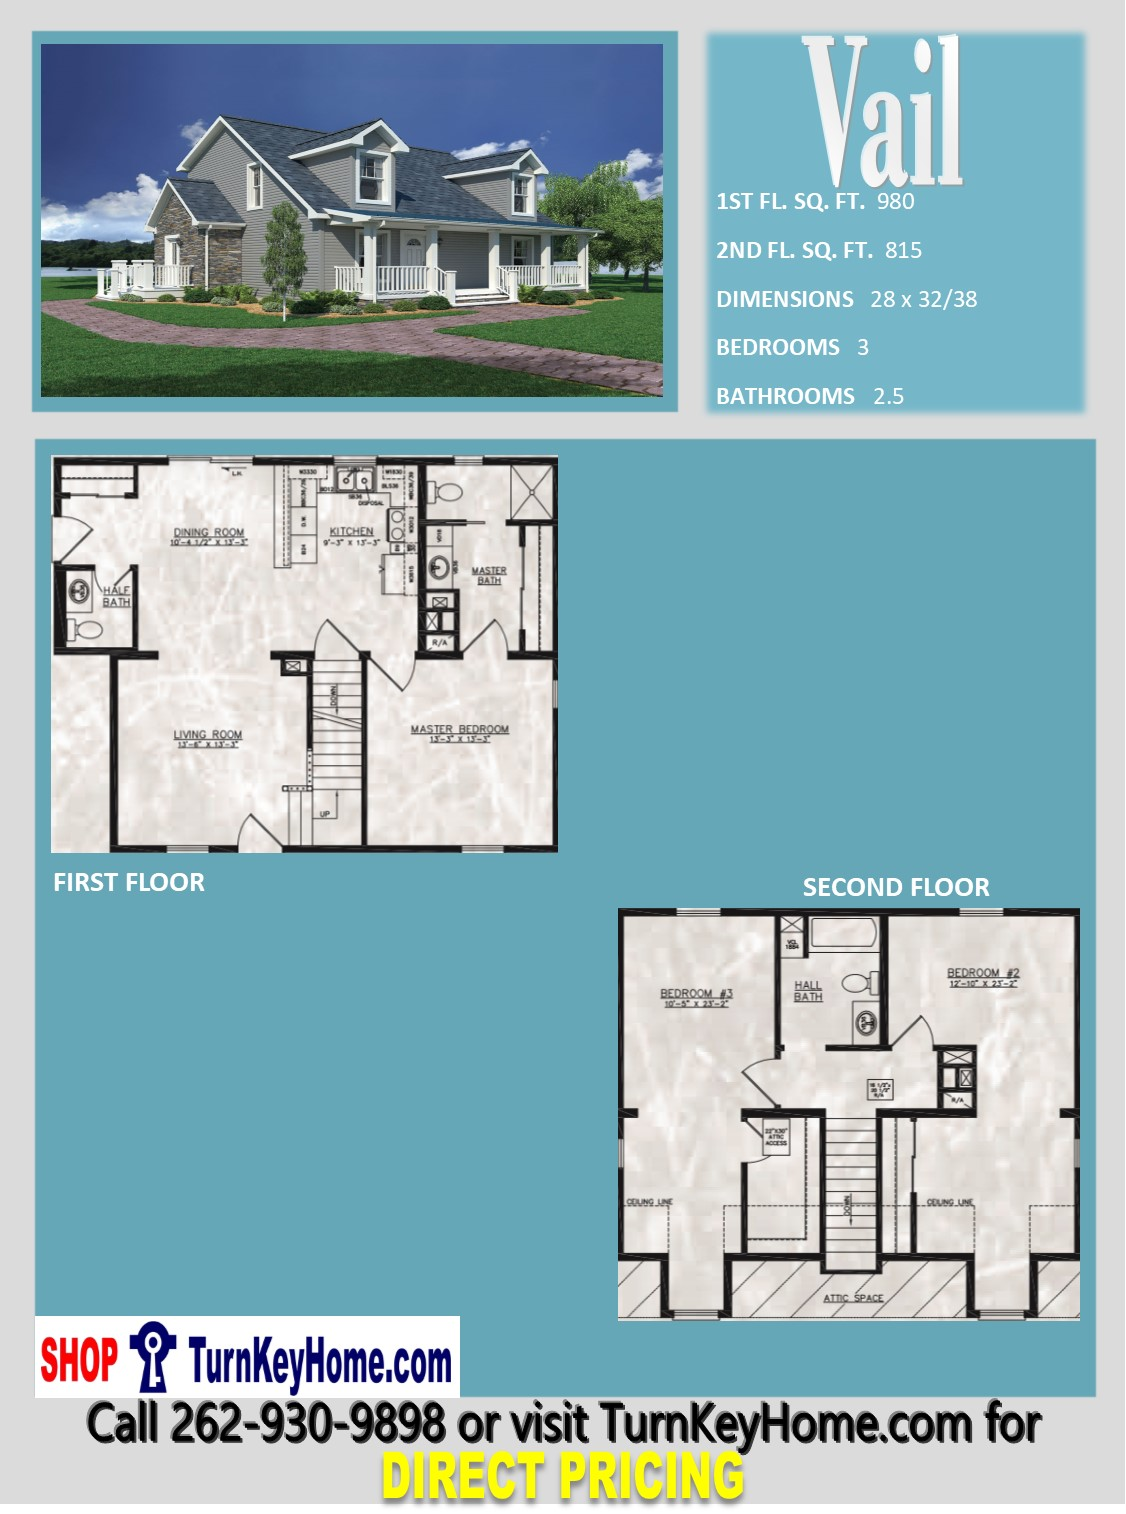 Vail cape cod style home 3 bed 2 5 bath plan 1795 sf for Direct from the designers house plans